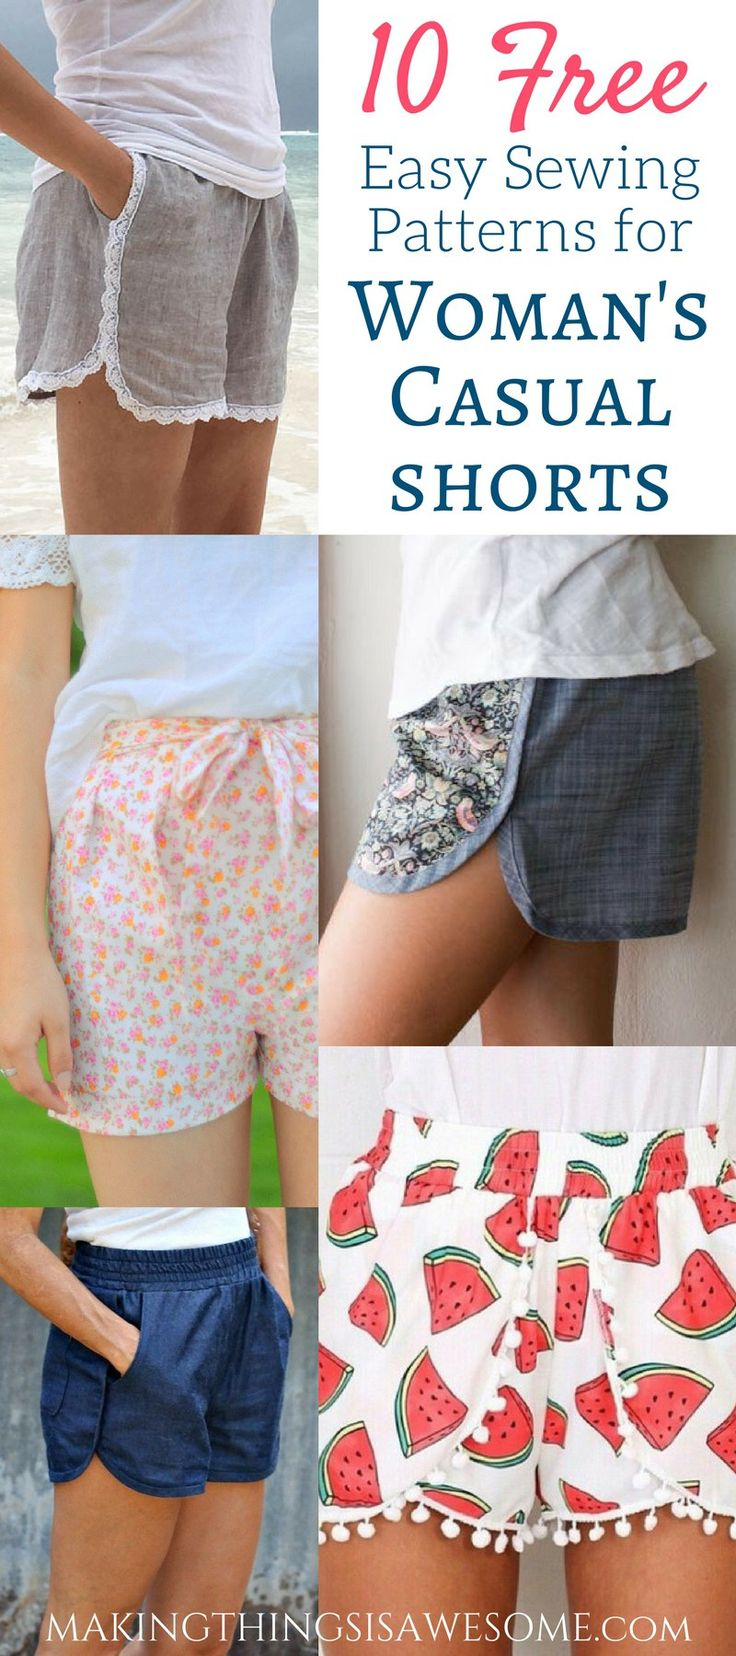 10 Free Woman's Casual Shorts Sewing Patterns: Round-up – Sarah Christensen